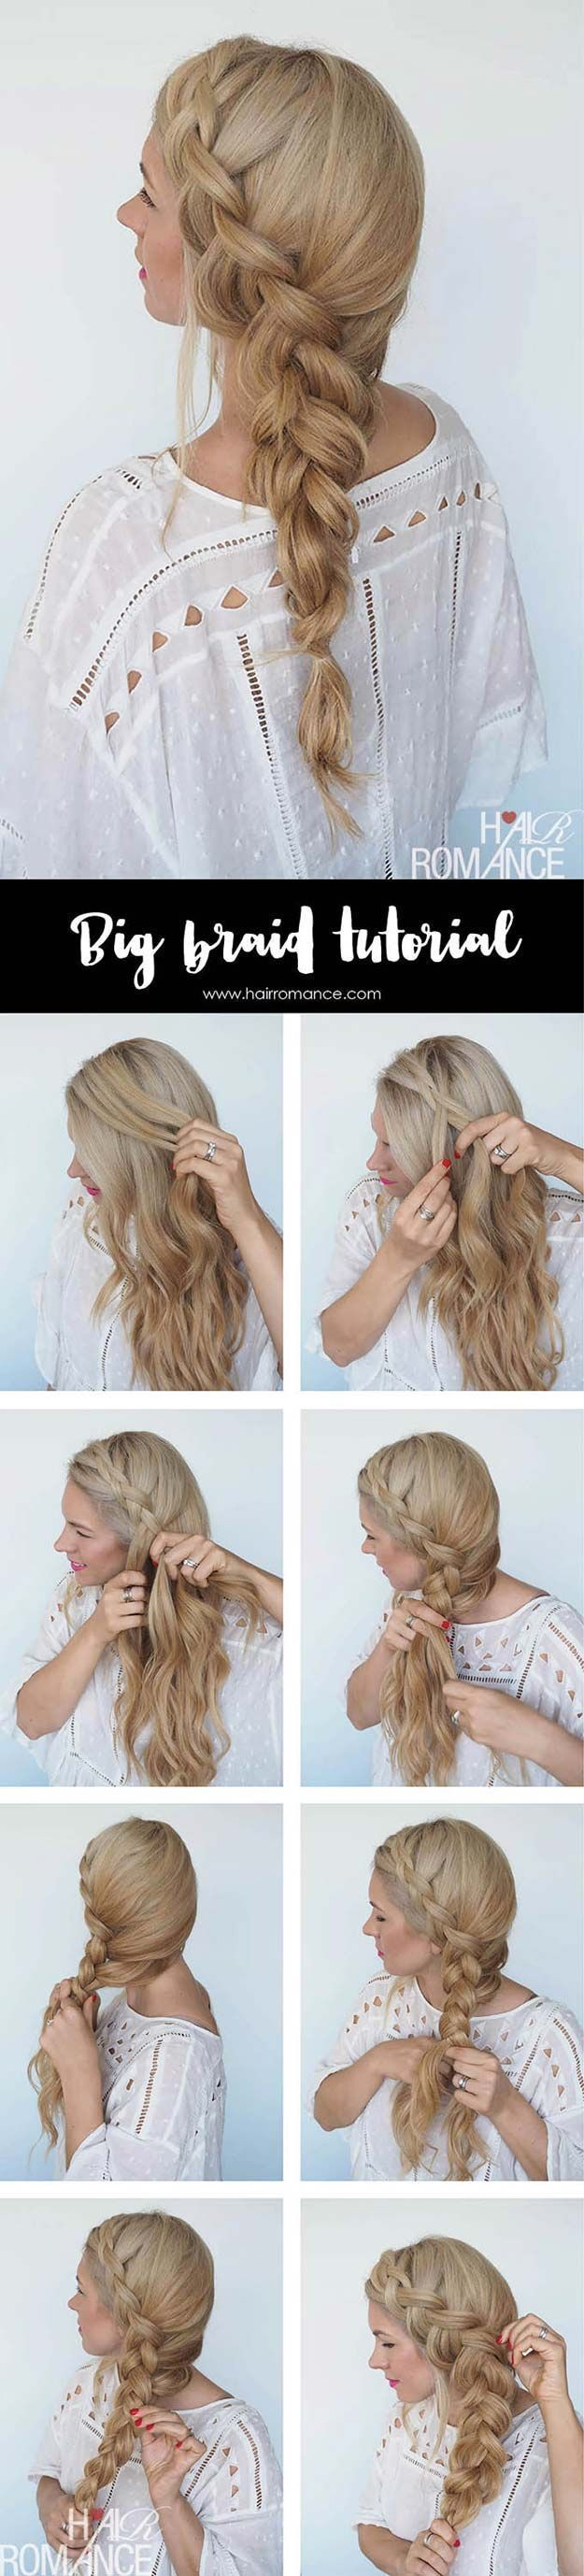 Best Hair Braiding Tutorials - Big Braid + Instant Mermaid Hair Tutorial - Easy Step by Step Tutorials for Braids - How To Braid Fishtail, French Braids, Flower Crown, Side Braids, Cornrows, Updos - Cool Braided Hairstyles for Girls, Teens and Women - School, Day and Evening, Boho, Casual and Formal Looks http://diyprojectsforteens.com/hair-braiding-tutorials